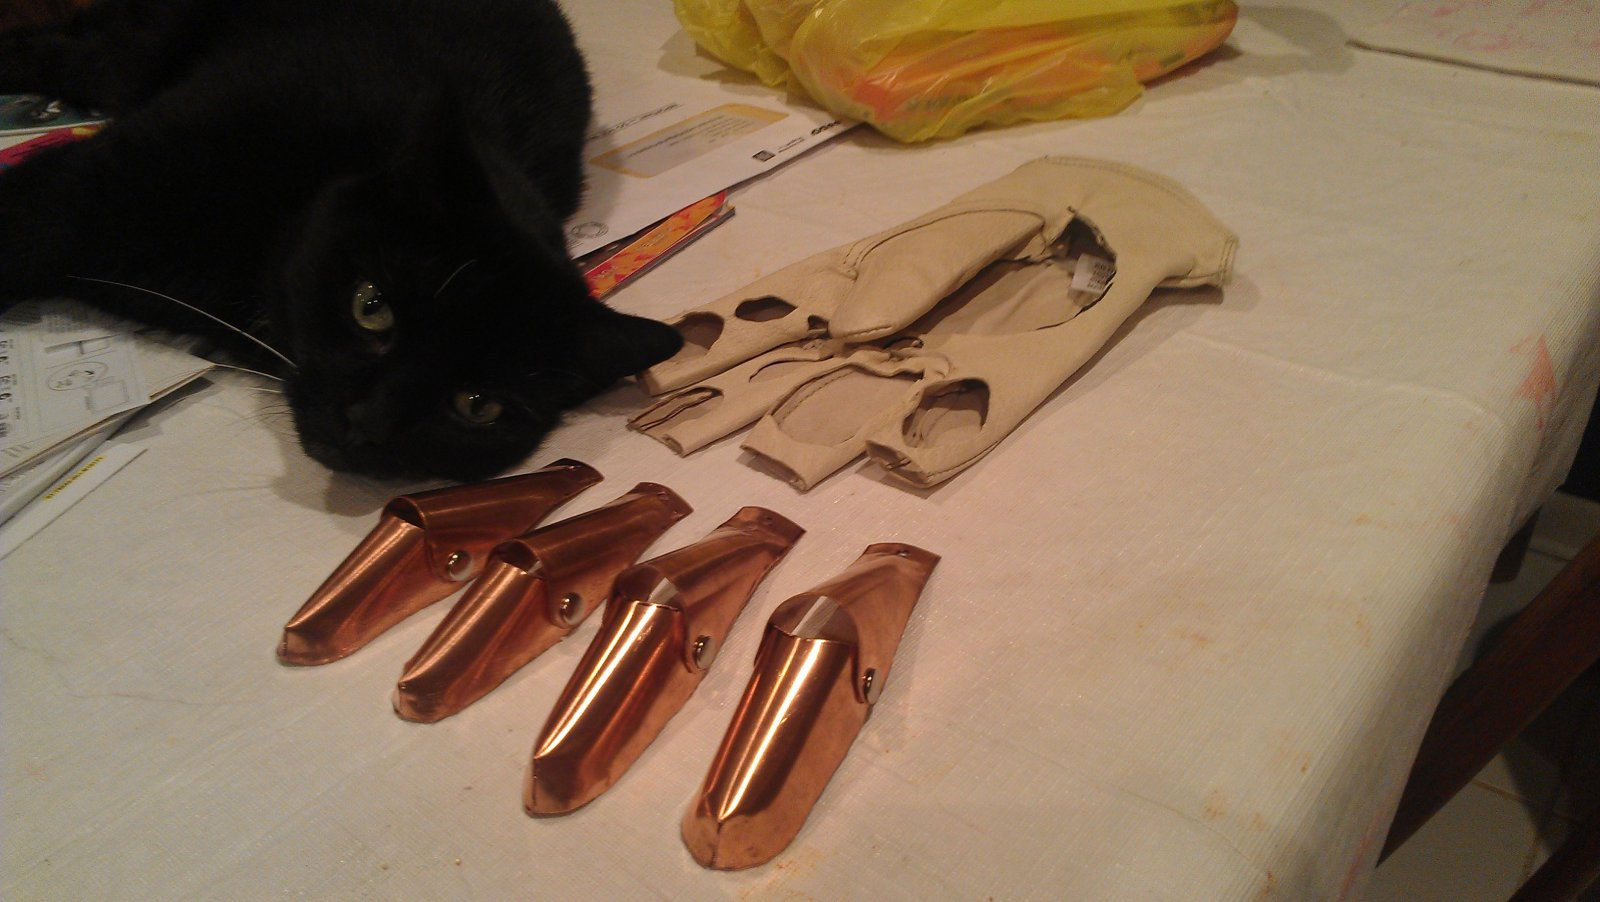 Kitty and the Glove